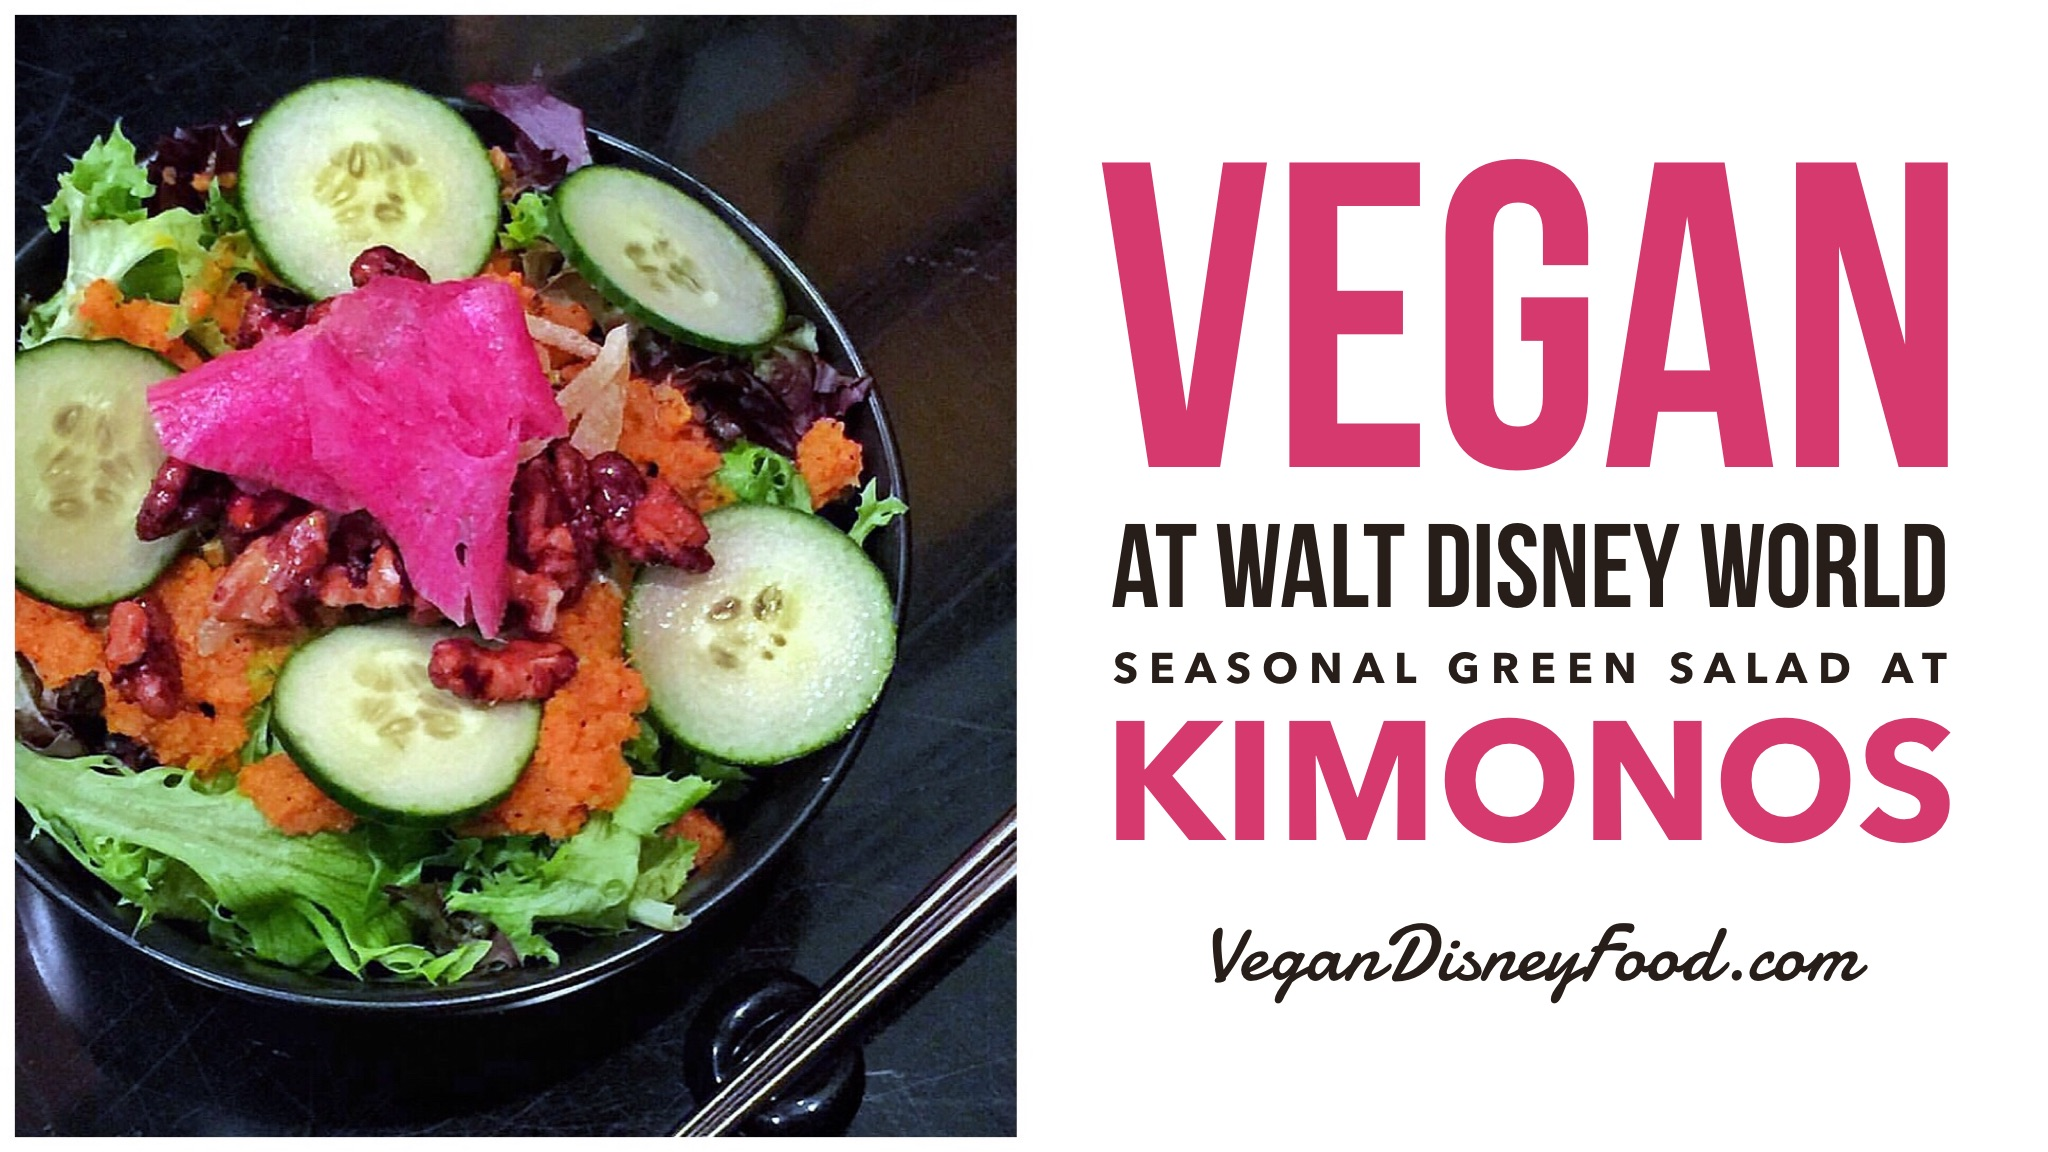 Vegan at Walt Disney World - Seasonal Green Salad at Kimonos in the Swan